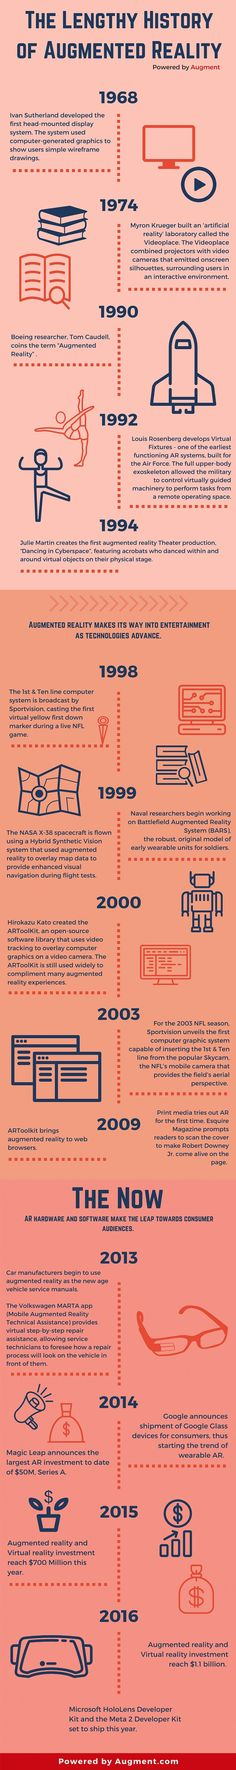 The history of Augmented Reality via #Emerce